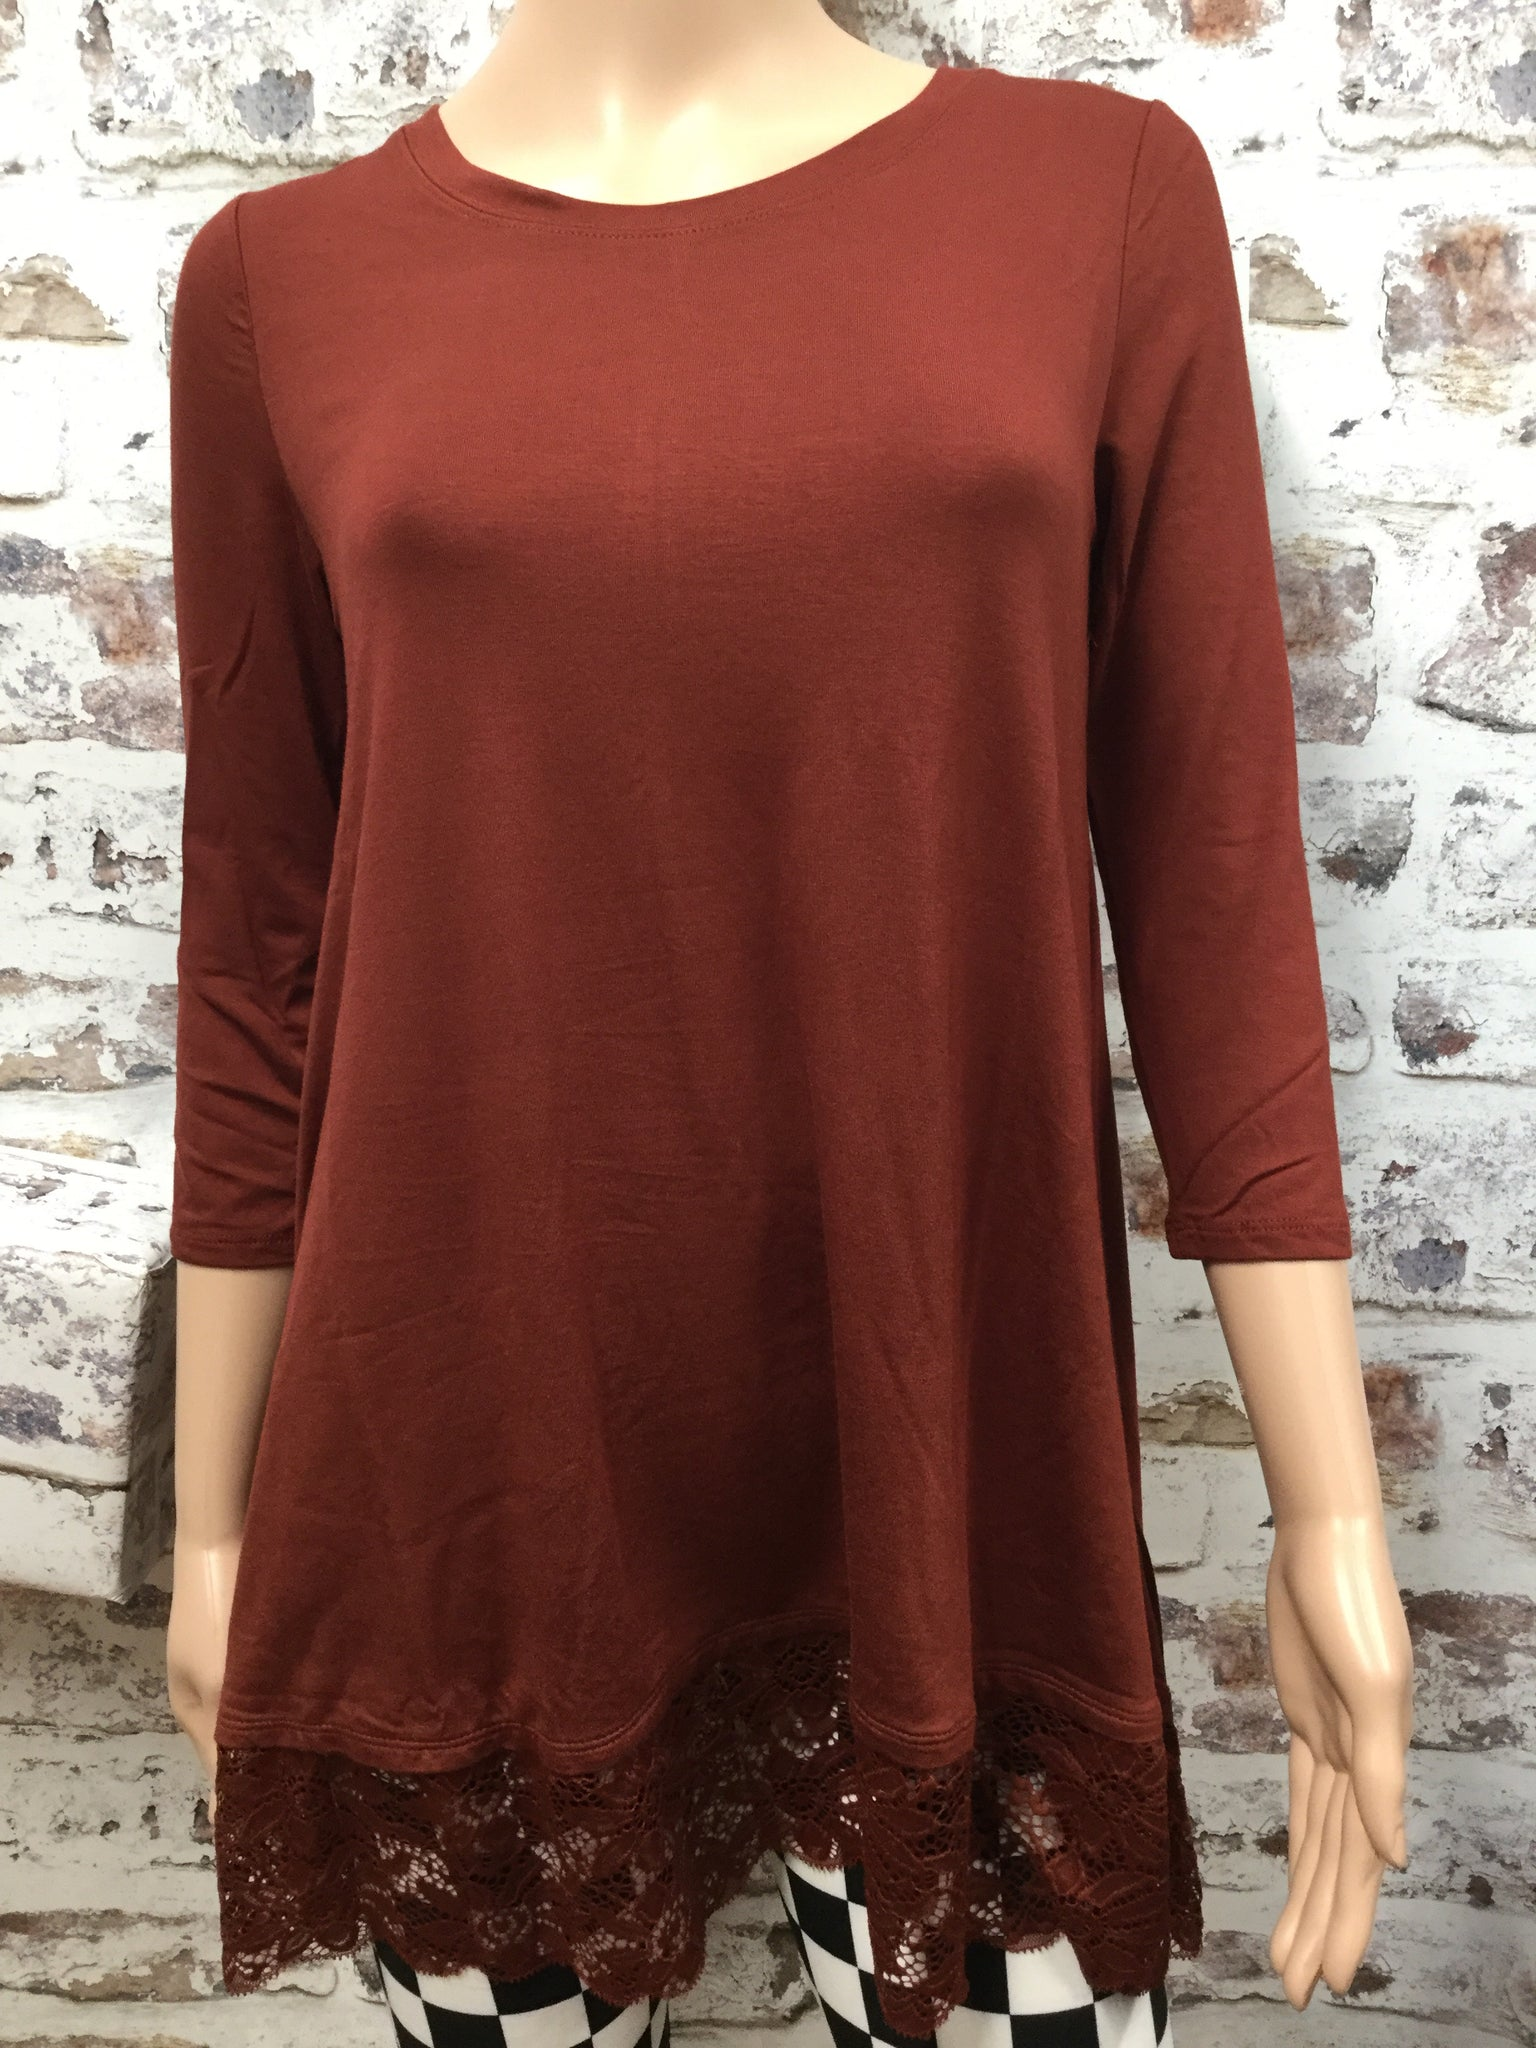 Rust 3/4 Sleeve Top with Lace Bottom